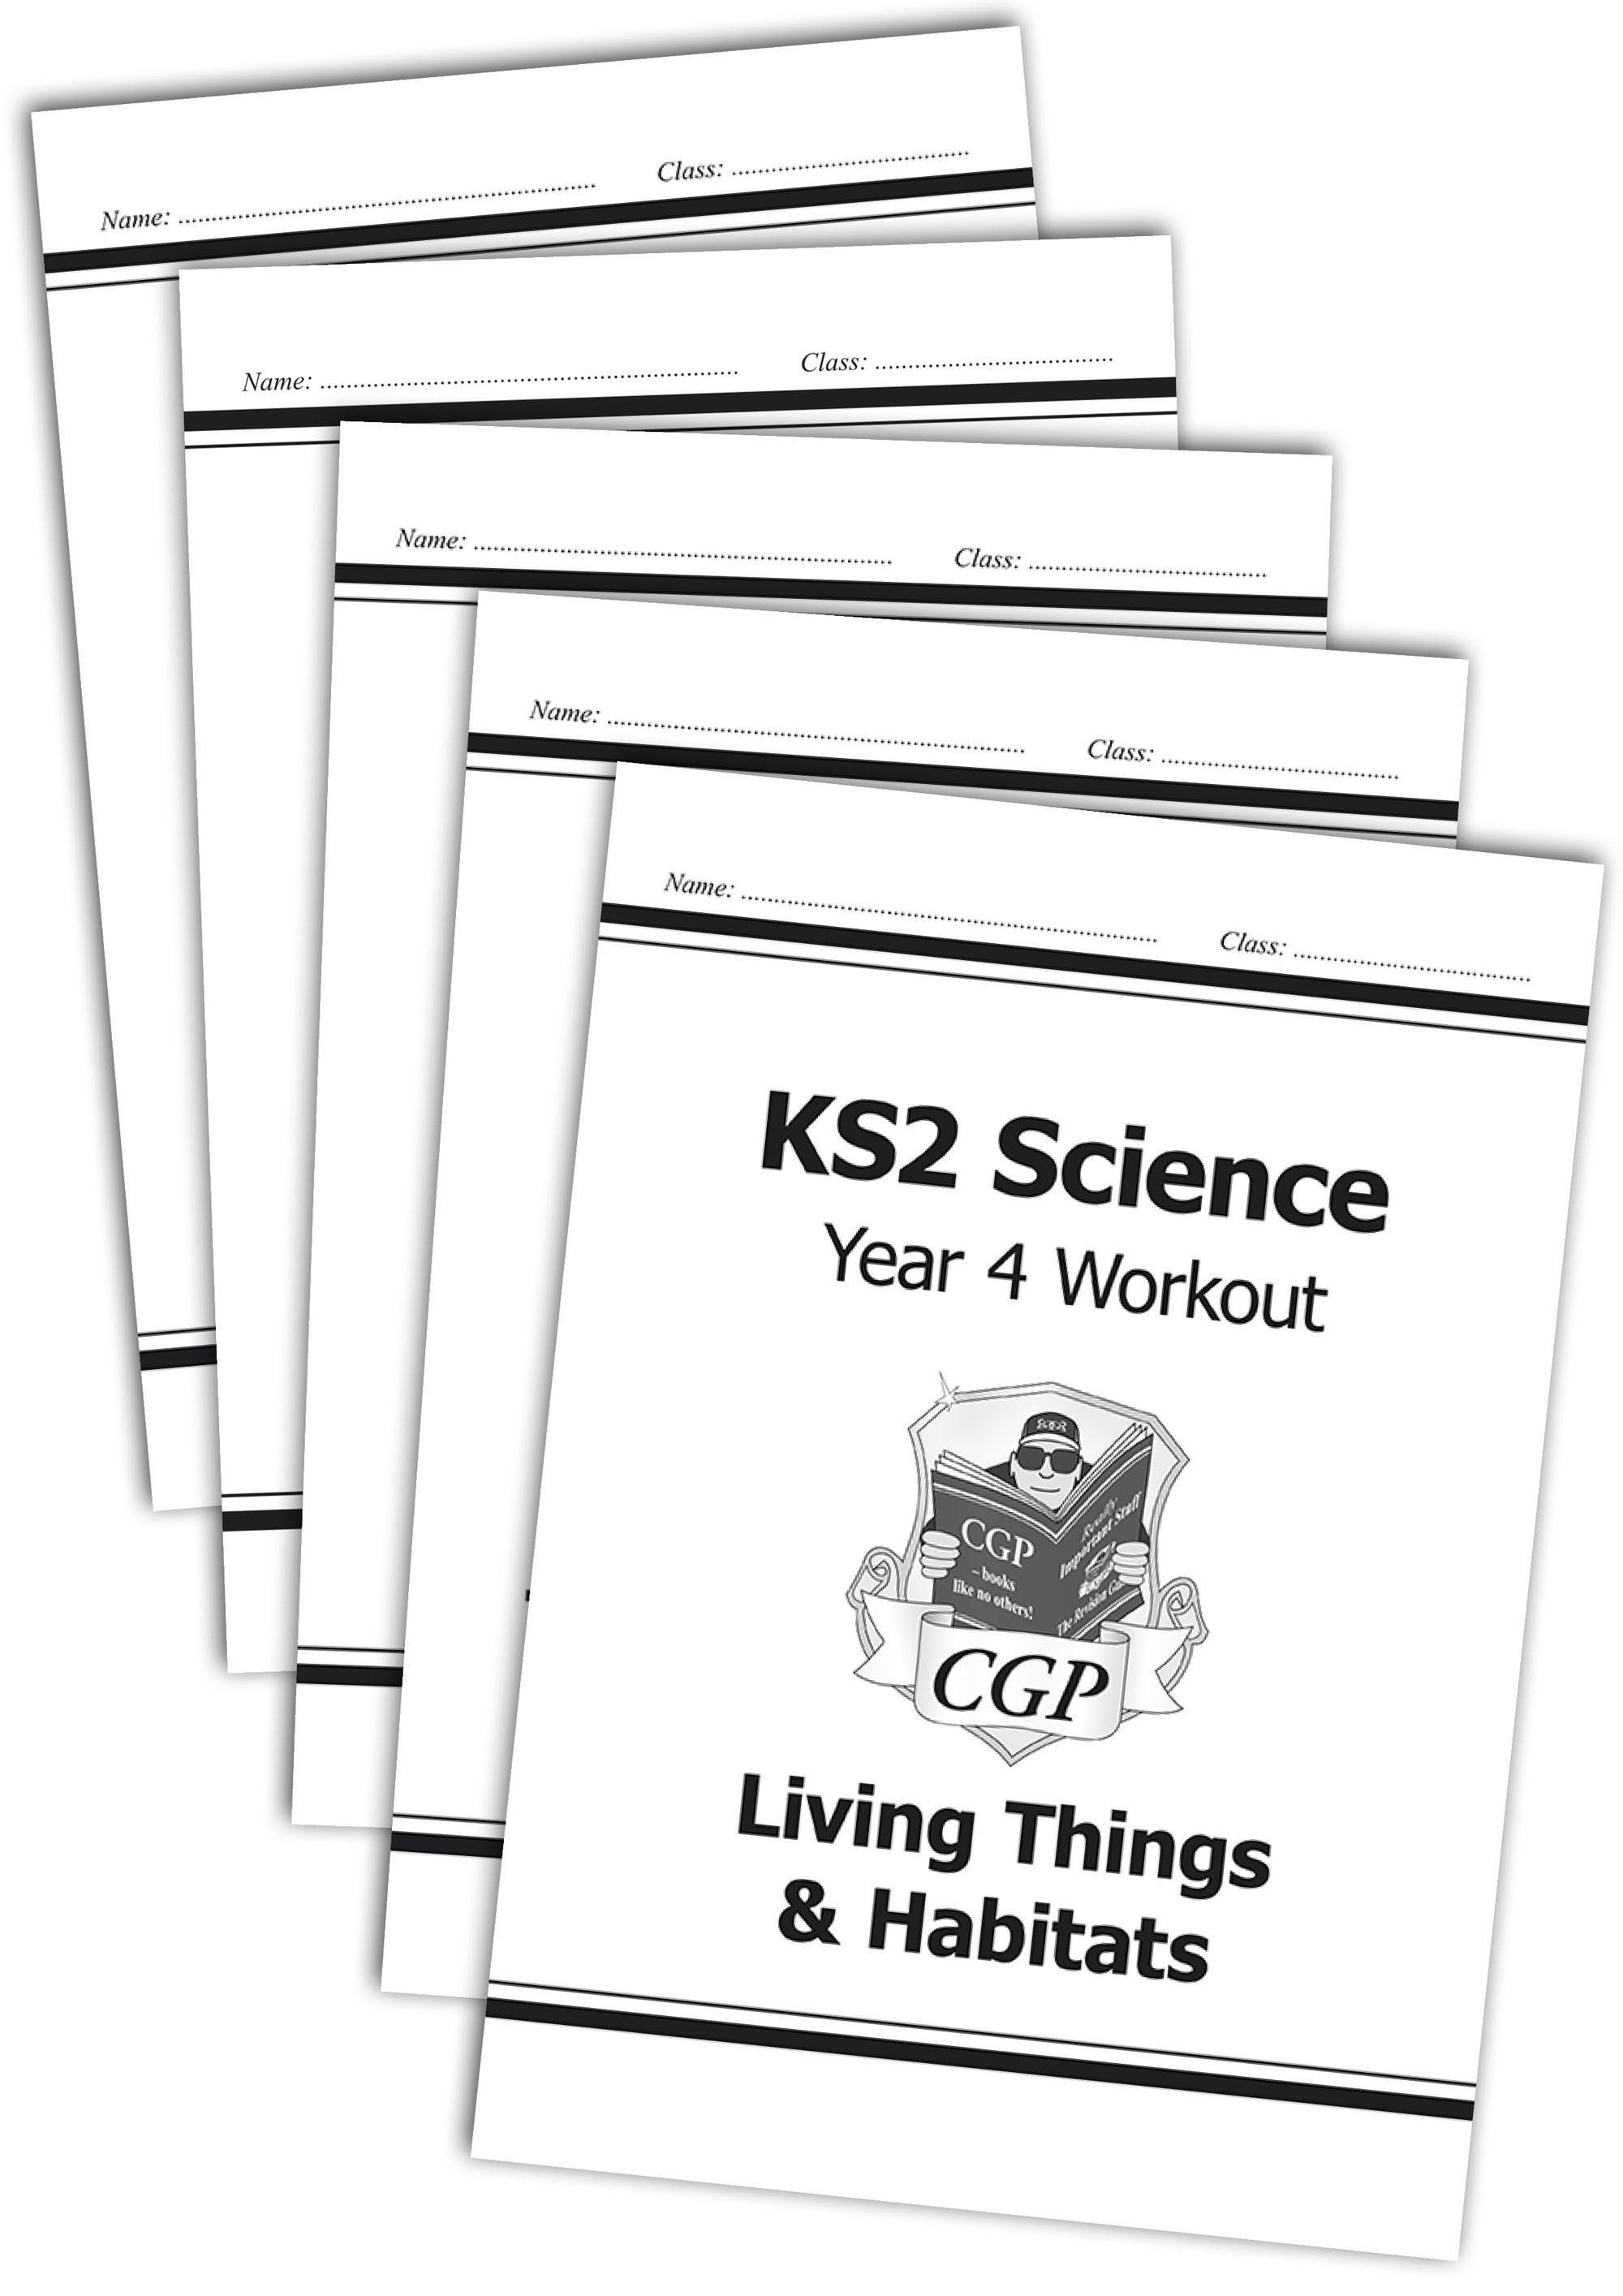 hight resolution of KS2 Science Year 6 Workout Bundle   CGP Books